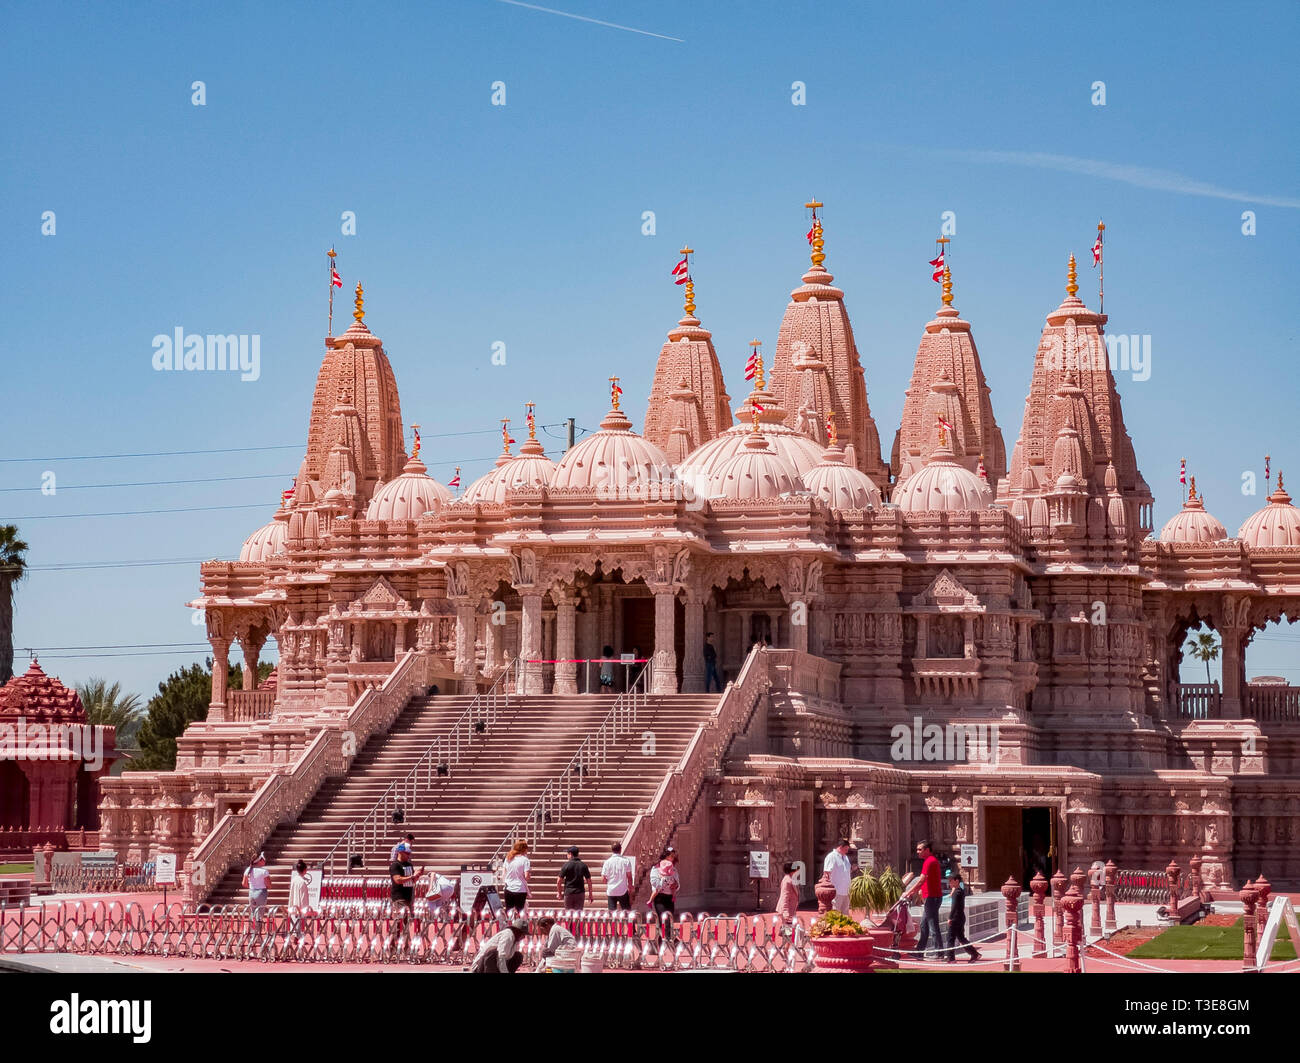 Chino Hills, MAR 31: Exterior view of the famous BAPS Shri